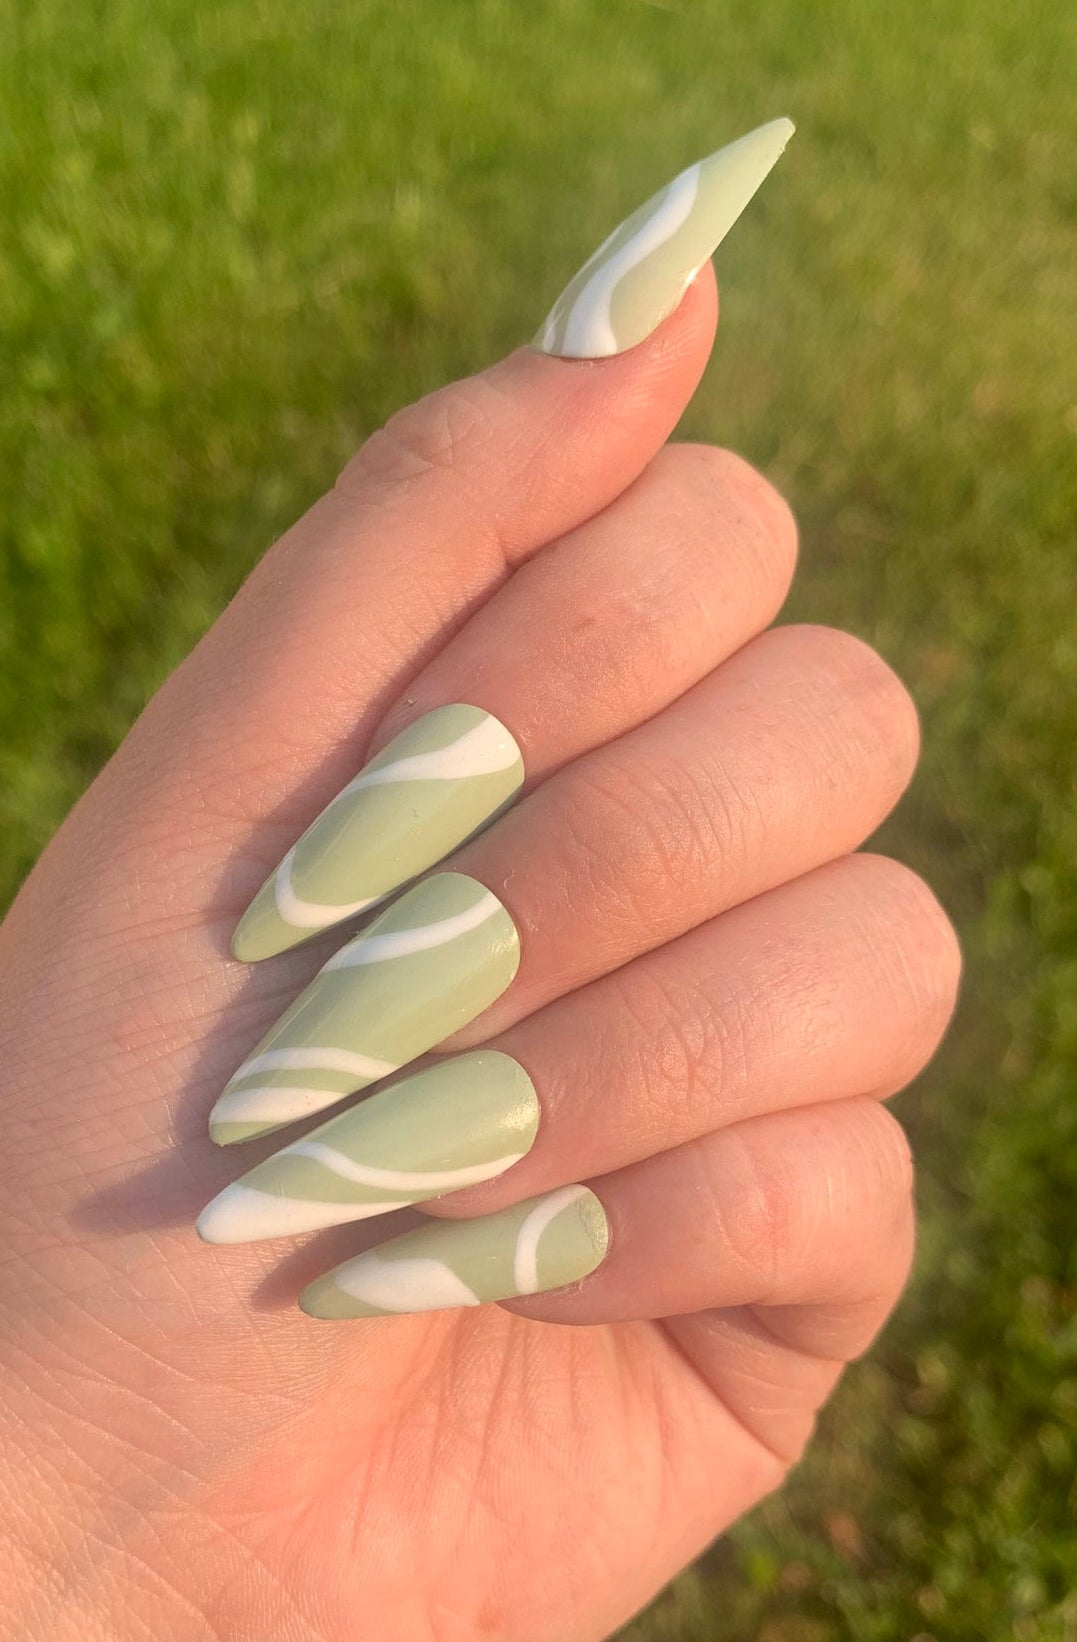 Sage green abstract nails with white swirls